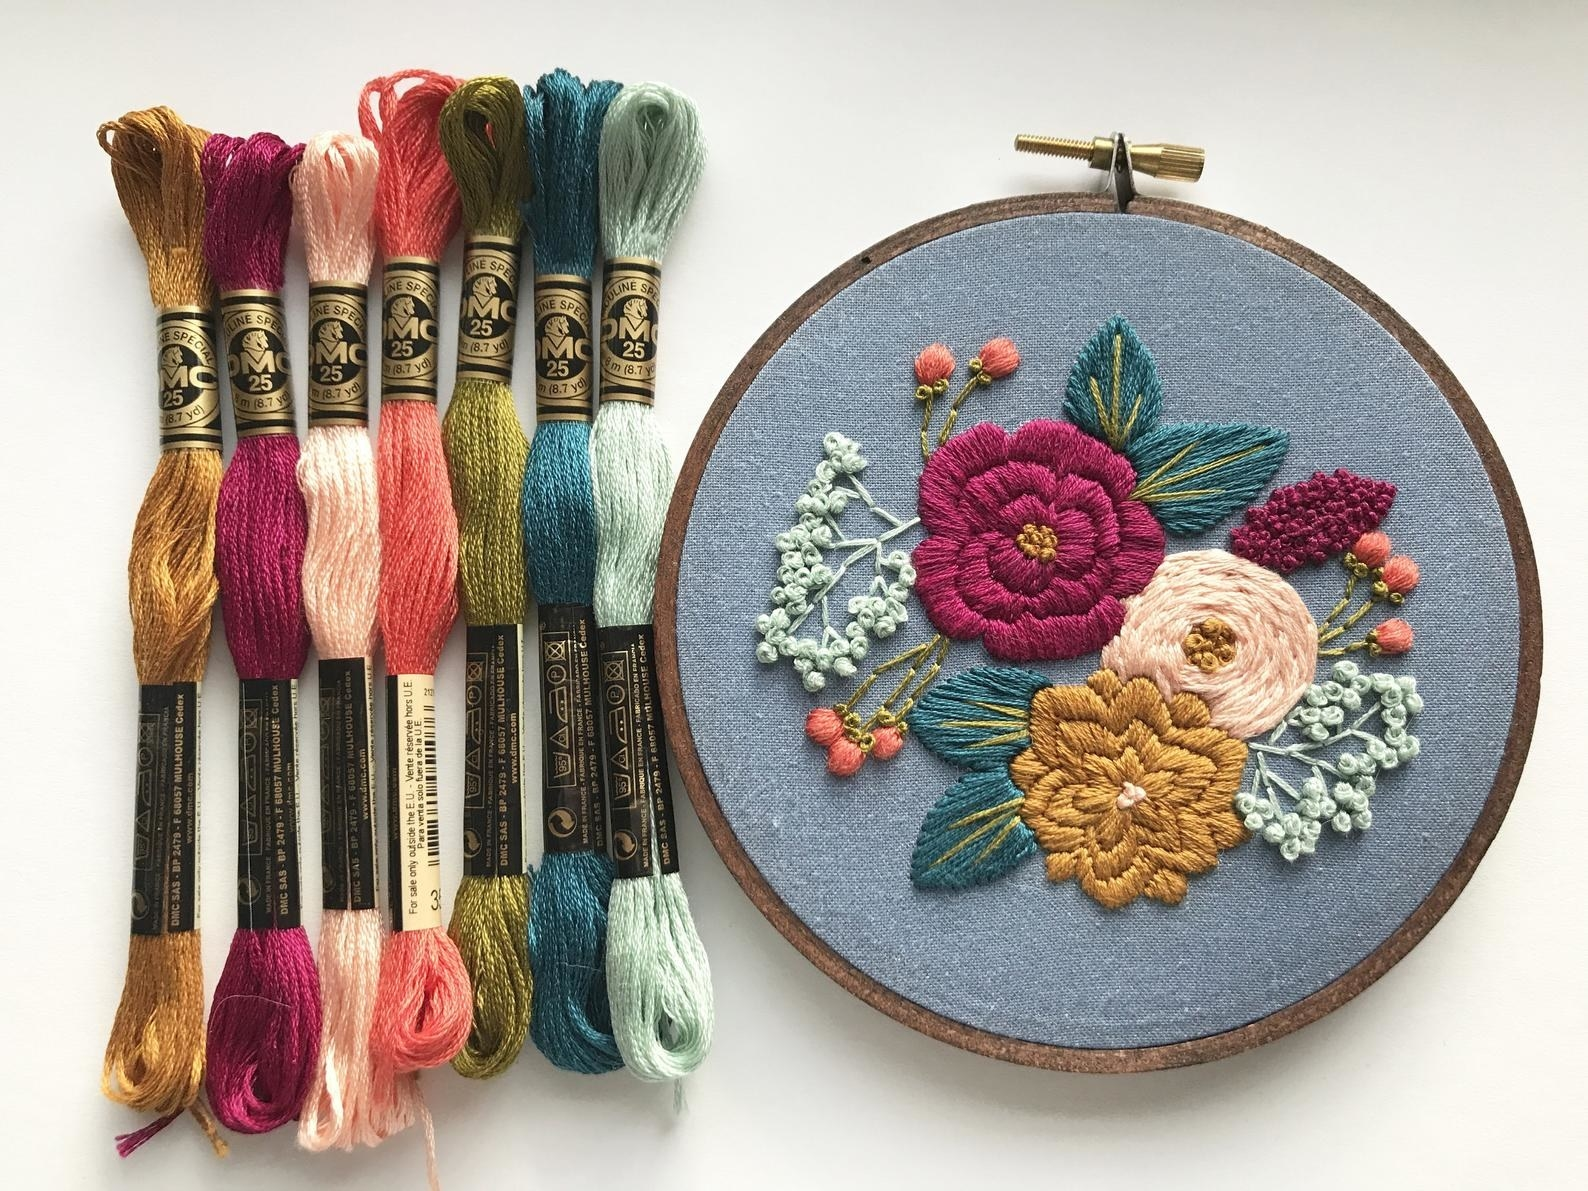 The embroidery shows three colorful flowers